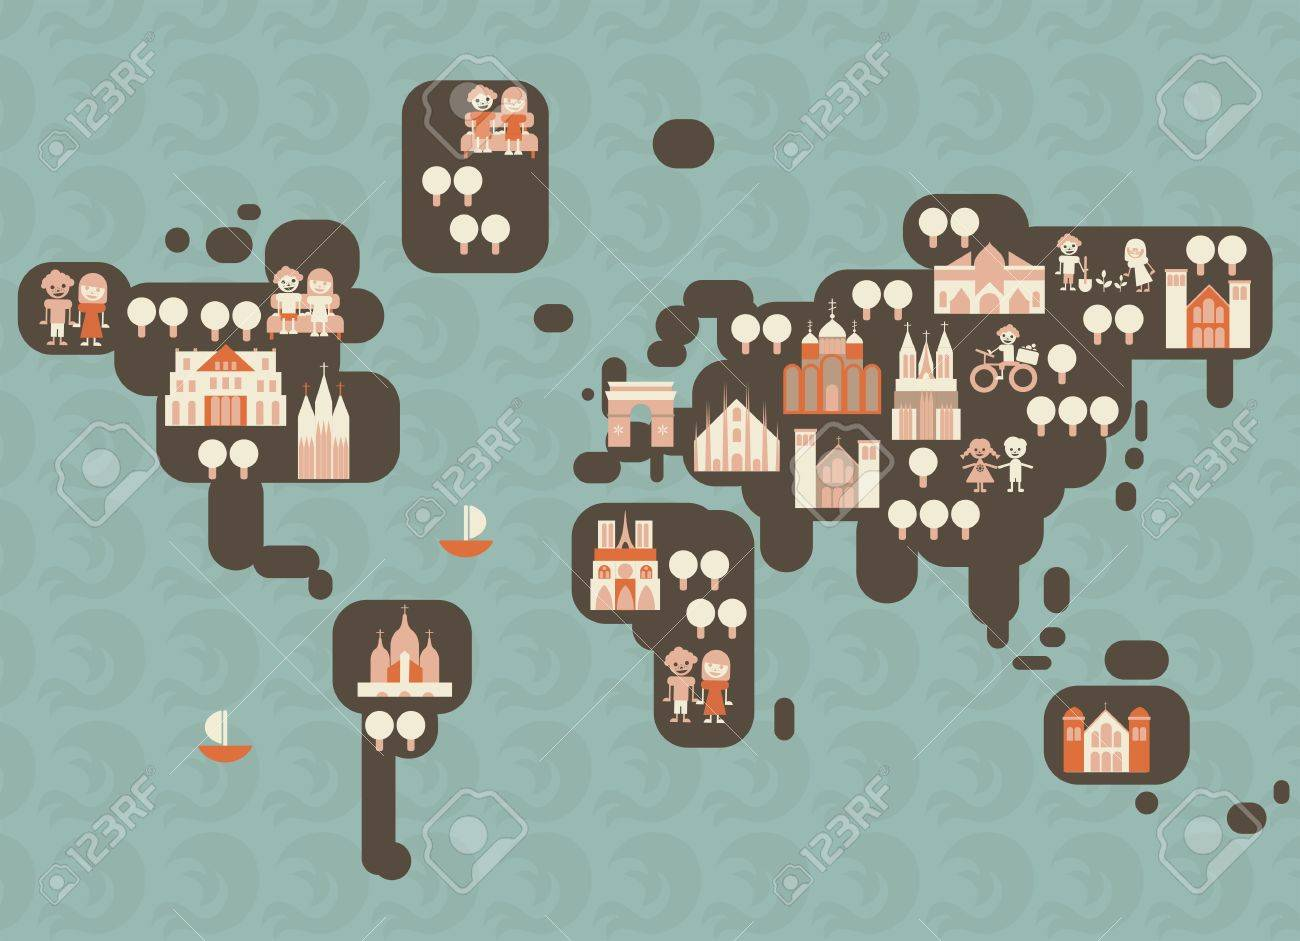 funky cartoon map of the world royalty free cliparts vectors and stock illustration image 13576890 funky cartoon map of the world